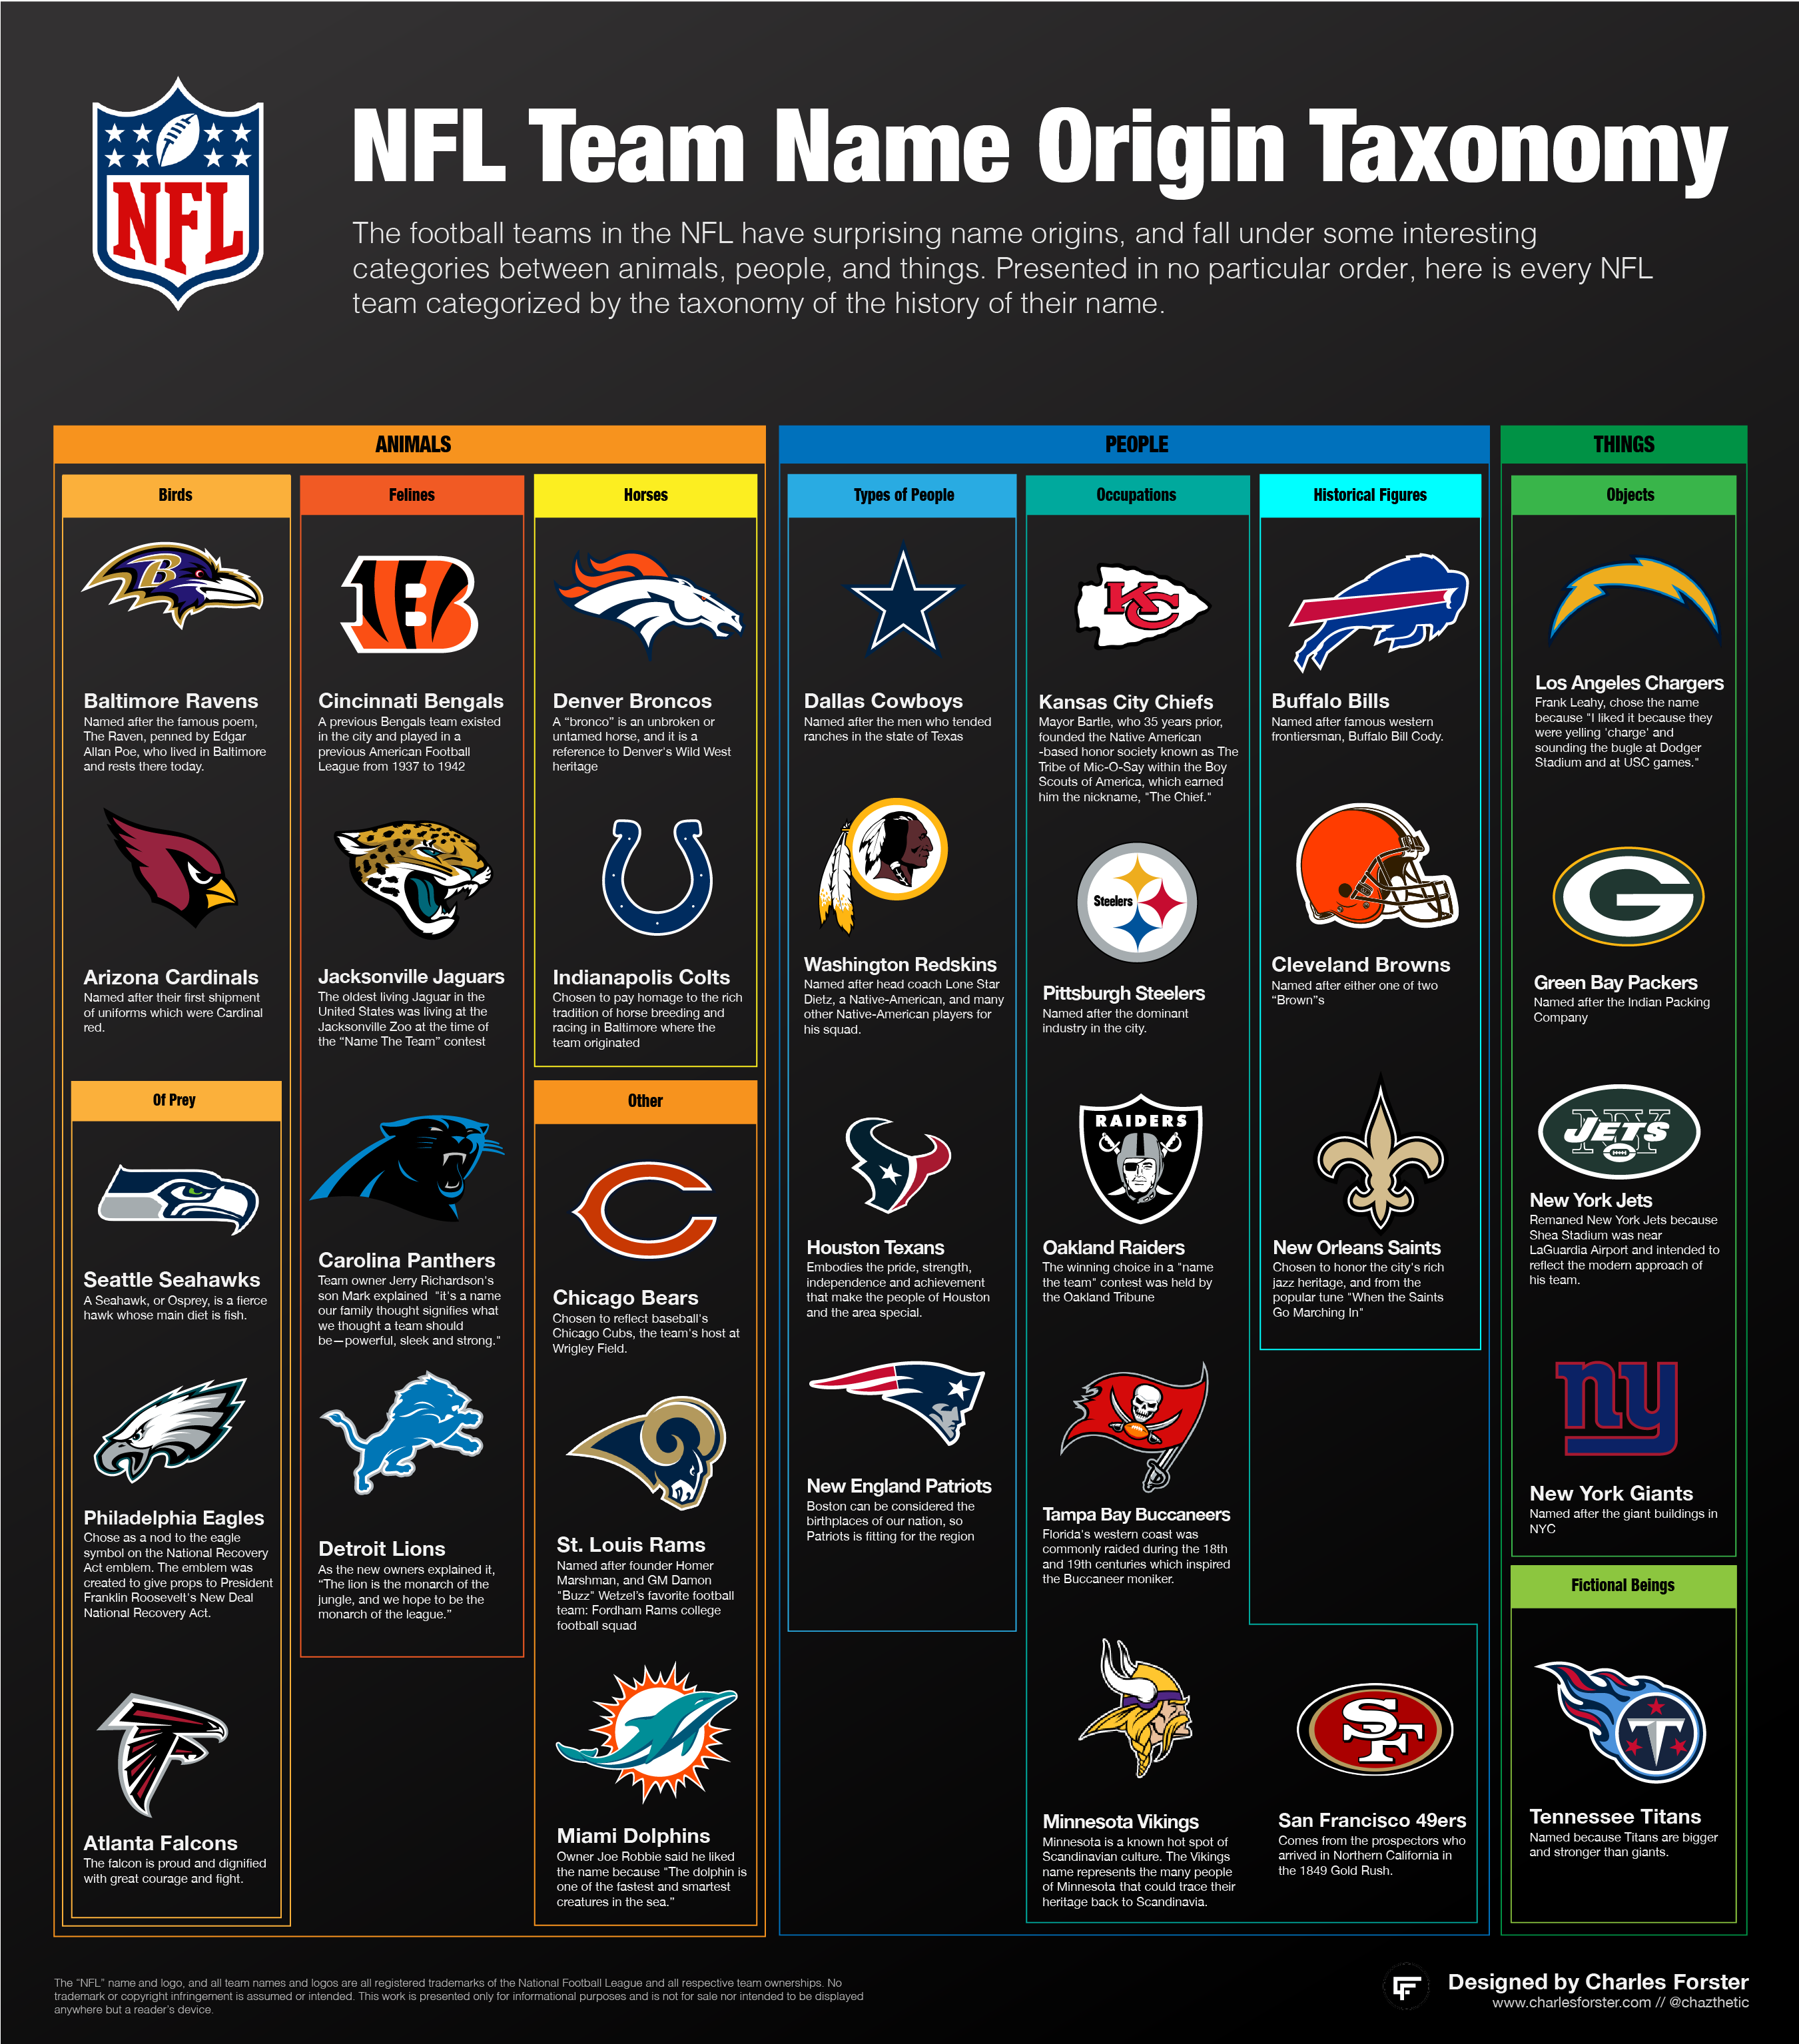 Taxonomy Of Nfl Teams Based On Their Name Origins In 2020 Team Names Nfl Teams Name Origins